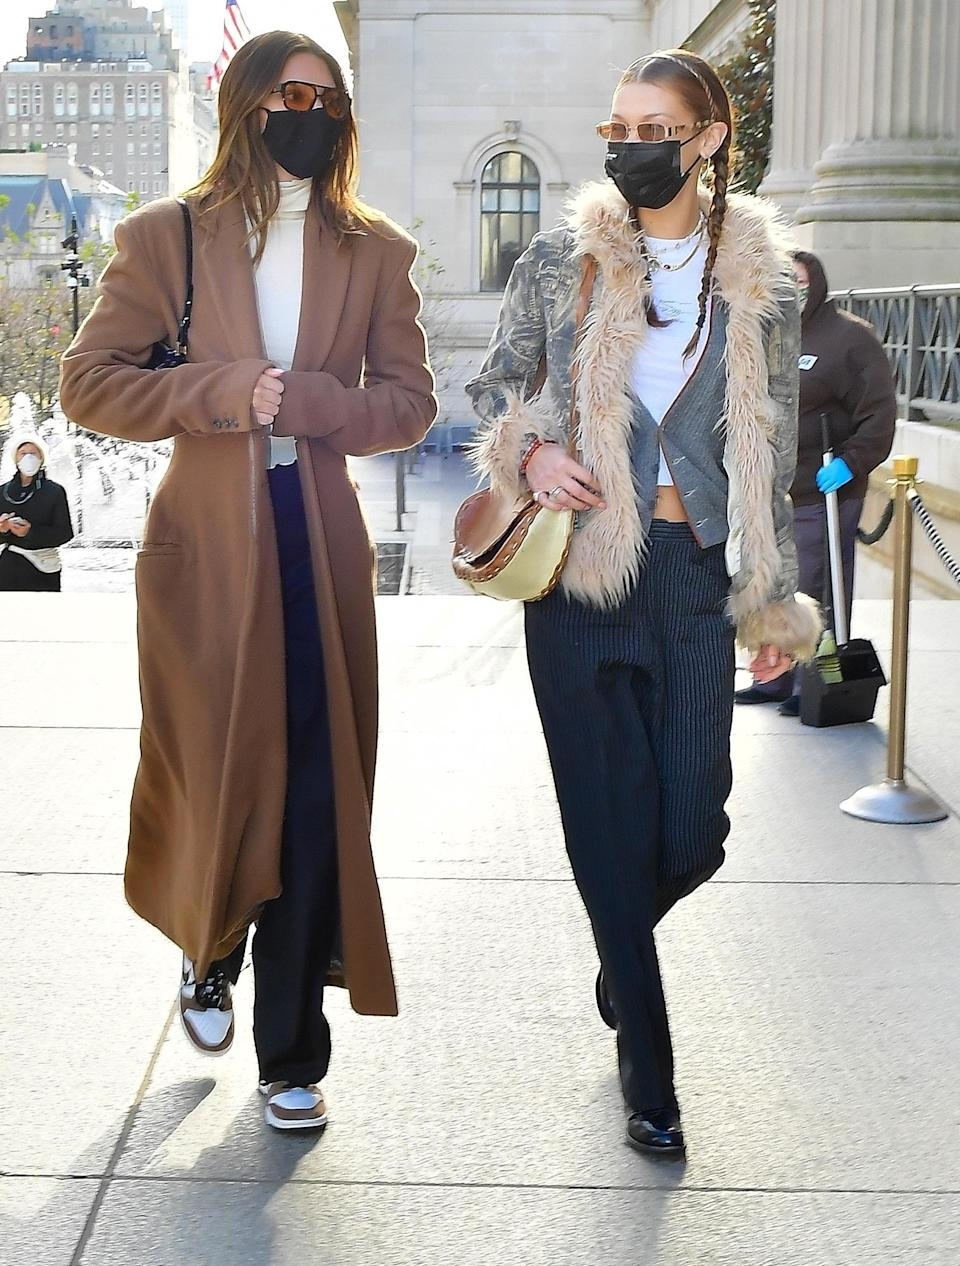 <p>Kendall Jenner and Bella Hadid leave Bubby's and head to the Metropolitan Museum of Art on Thursday in N.Y.C.</p>